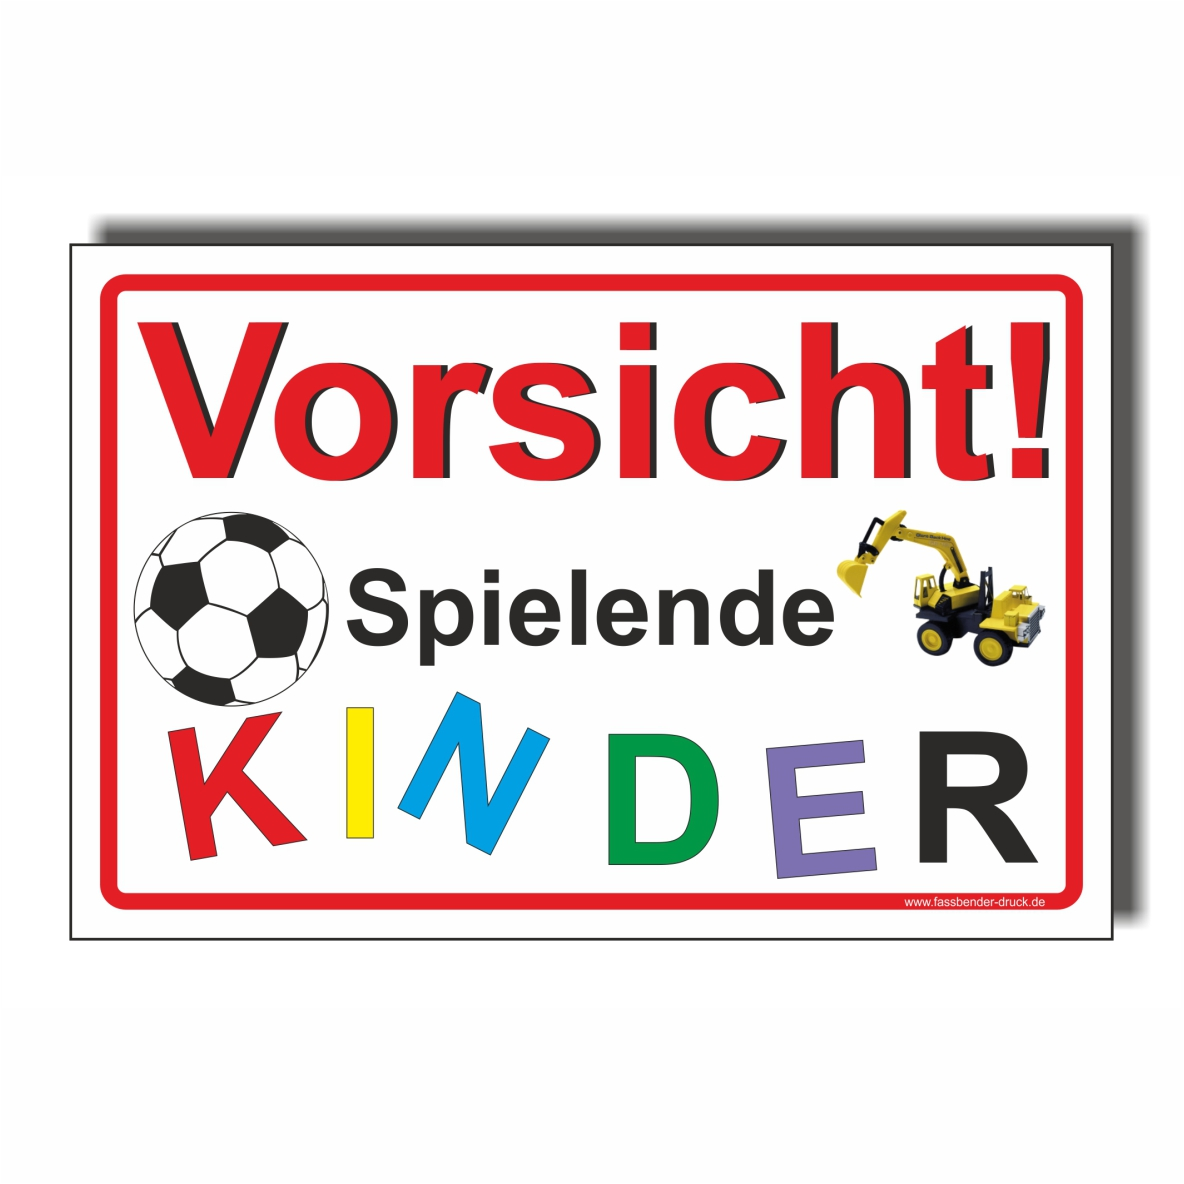 40x60cm schild aufkleber vorsicht spielende kinder. Black Bedroom Furniture Sets. Home Design Ideas